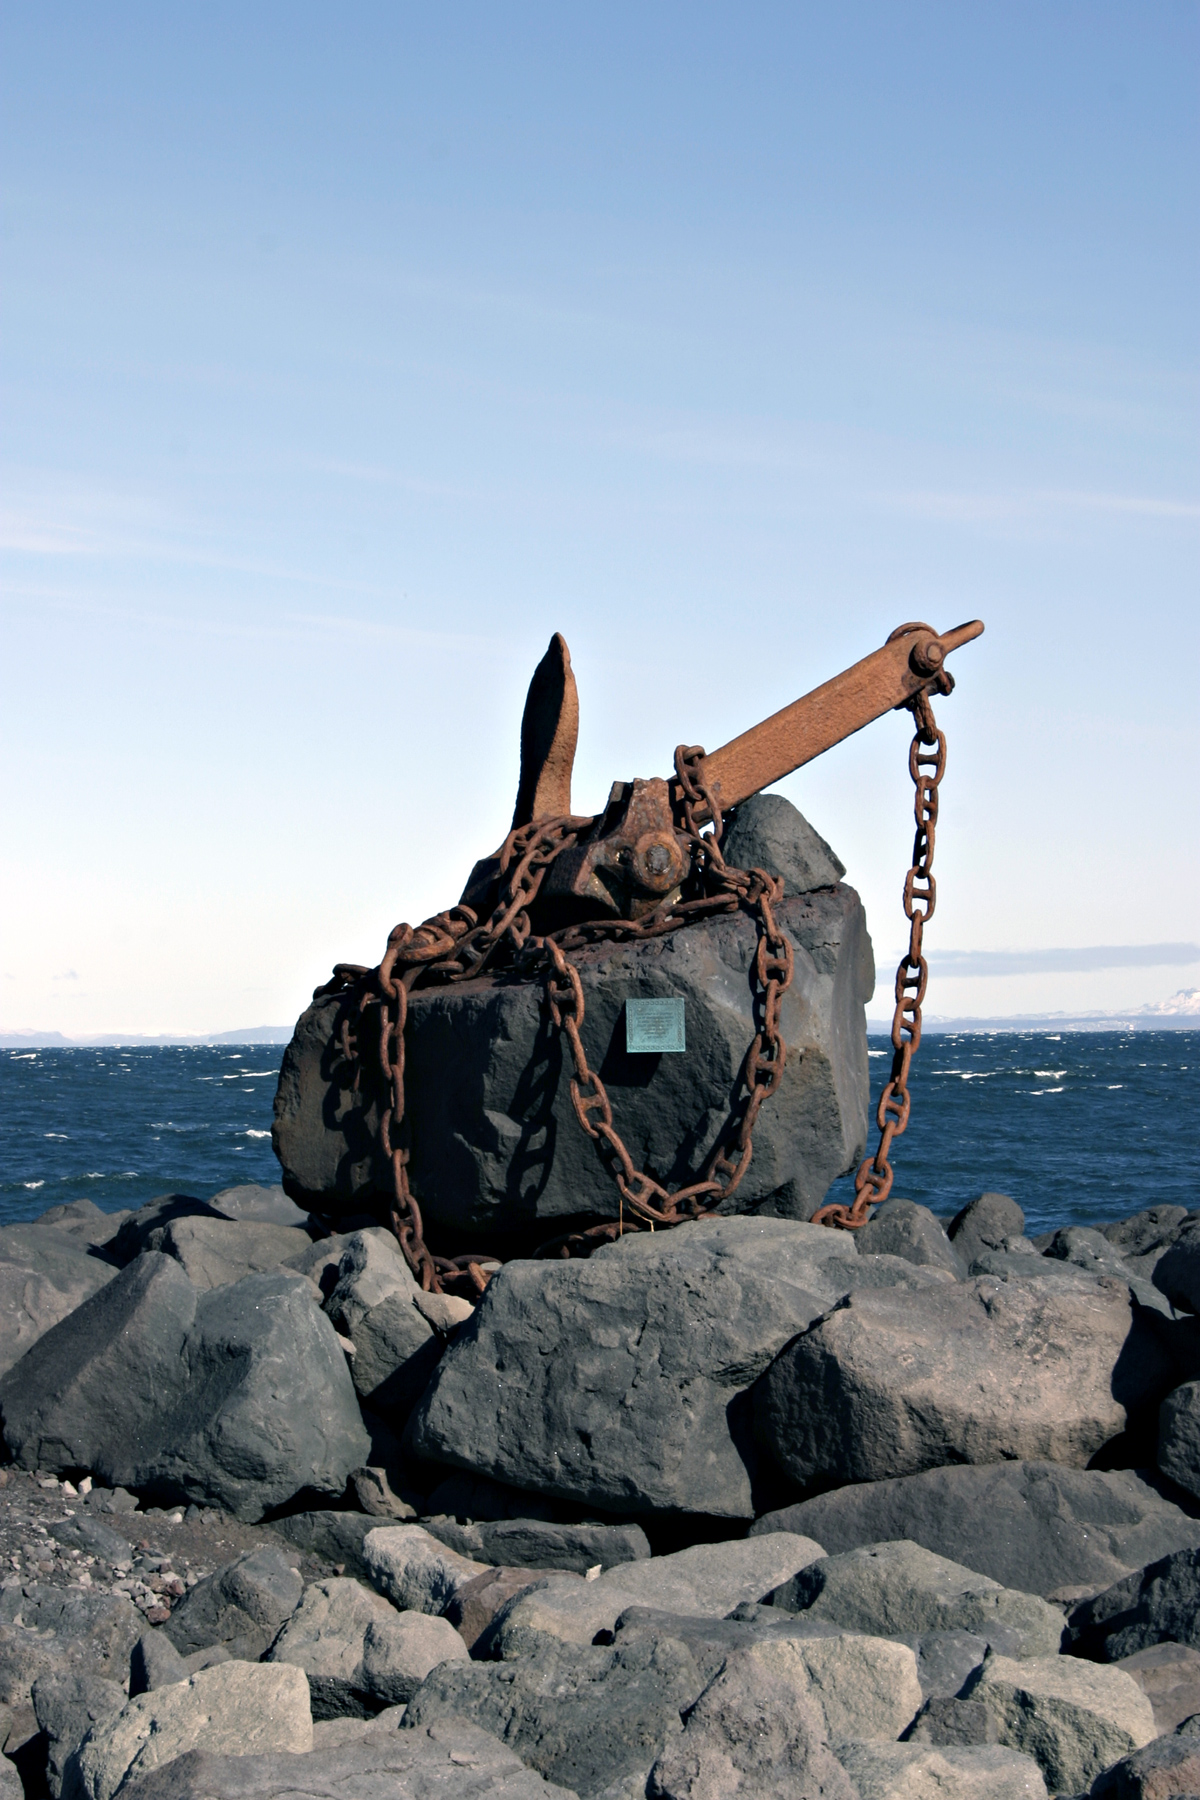 Sculpture of anchor and chains, Anchor, Art, Chains, Coast, HQ Photo